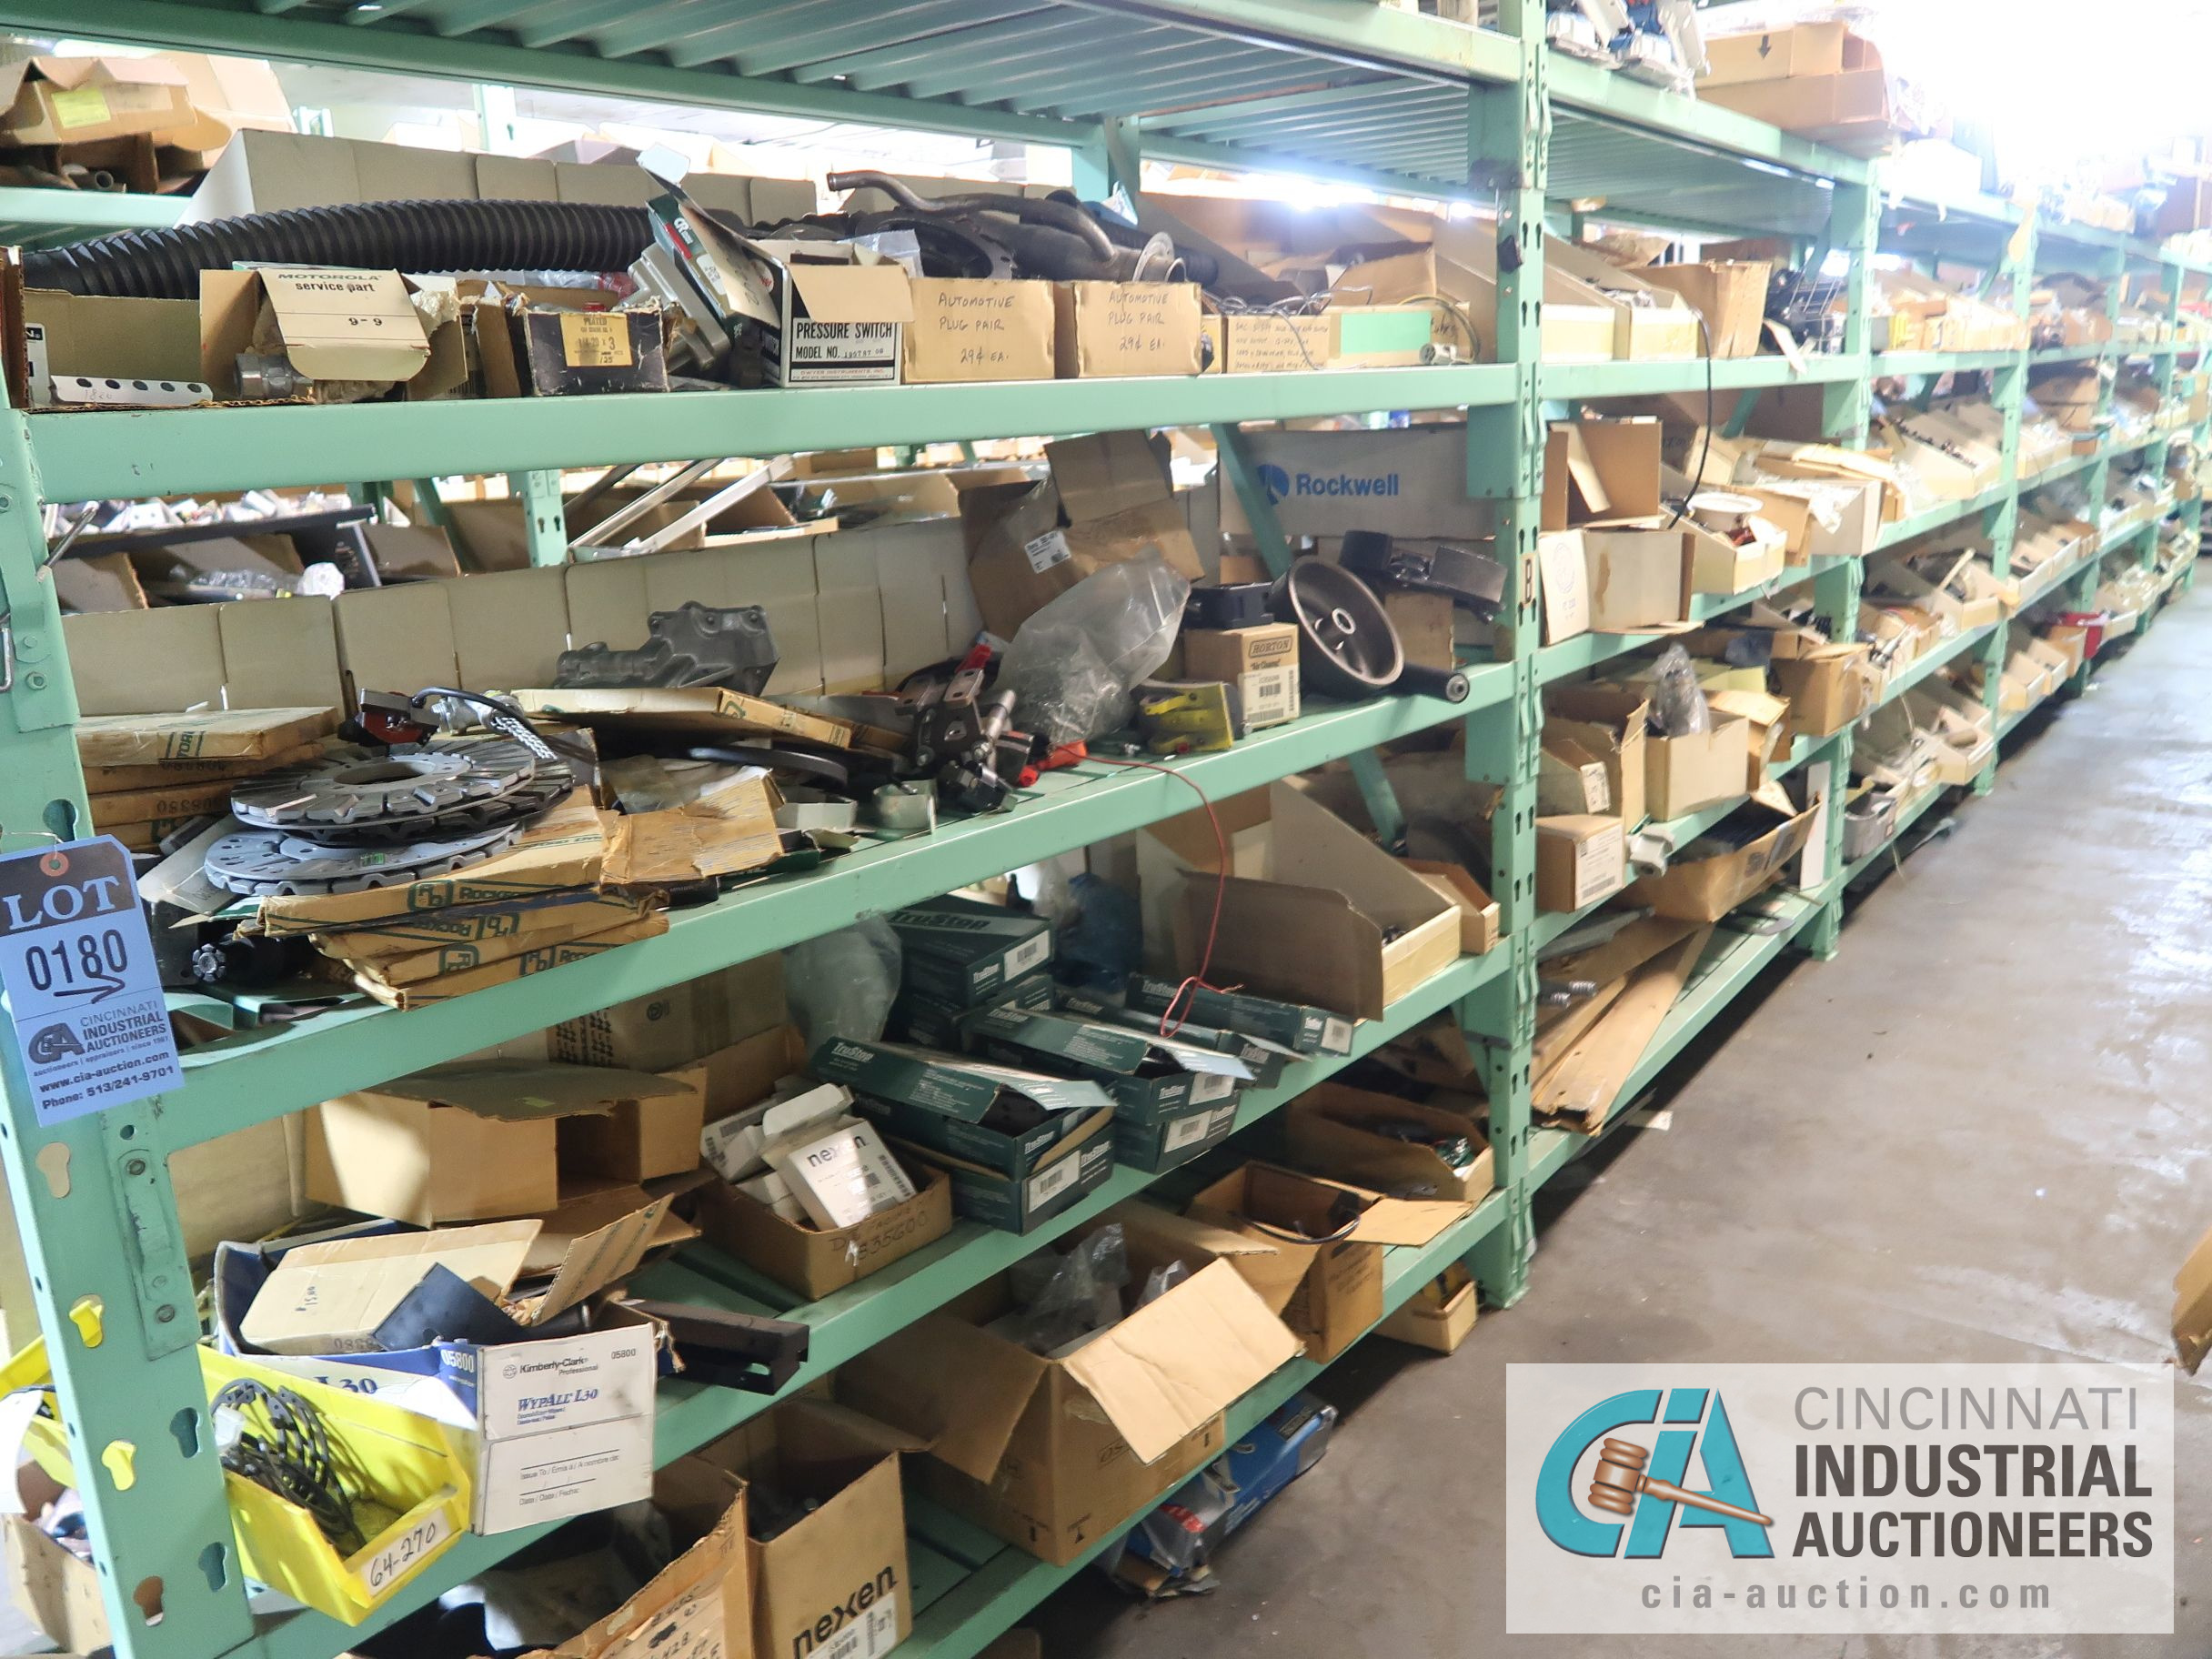 CONTENTS OF (6) RACKS INCLUDING MISCELLANEOUS AUTOMOTIVE PARTS, BREAKS, ROTORS, GASKETS, MOUNTING